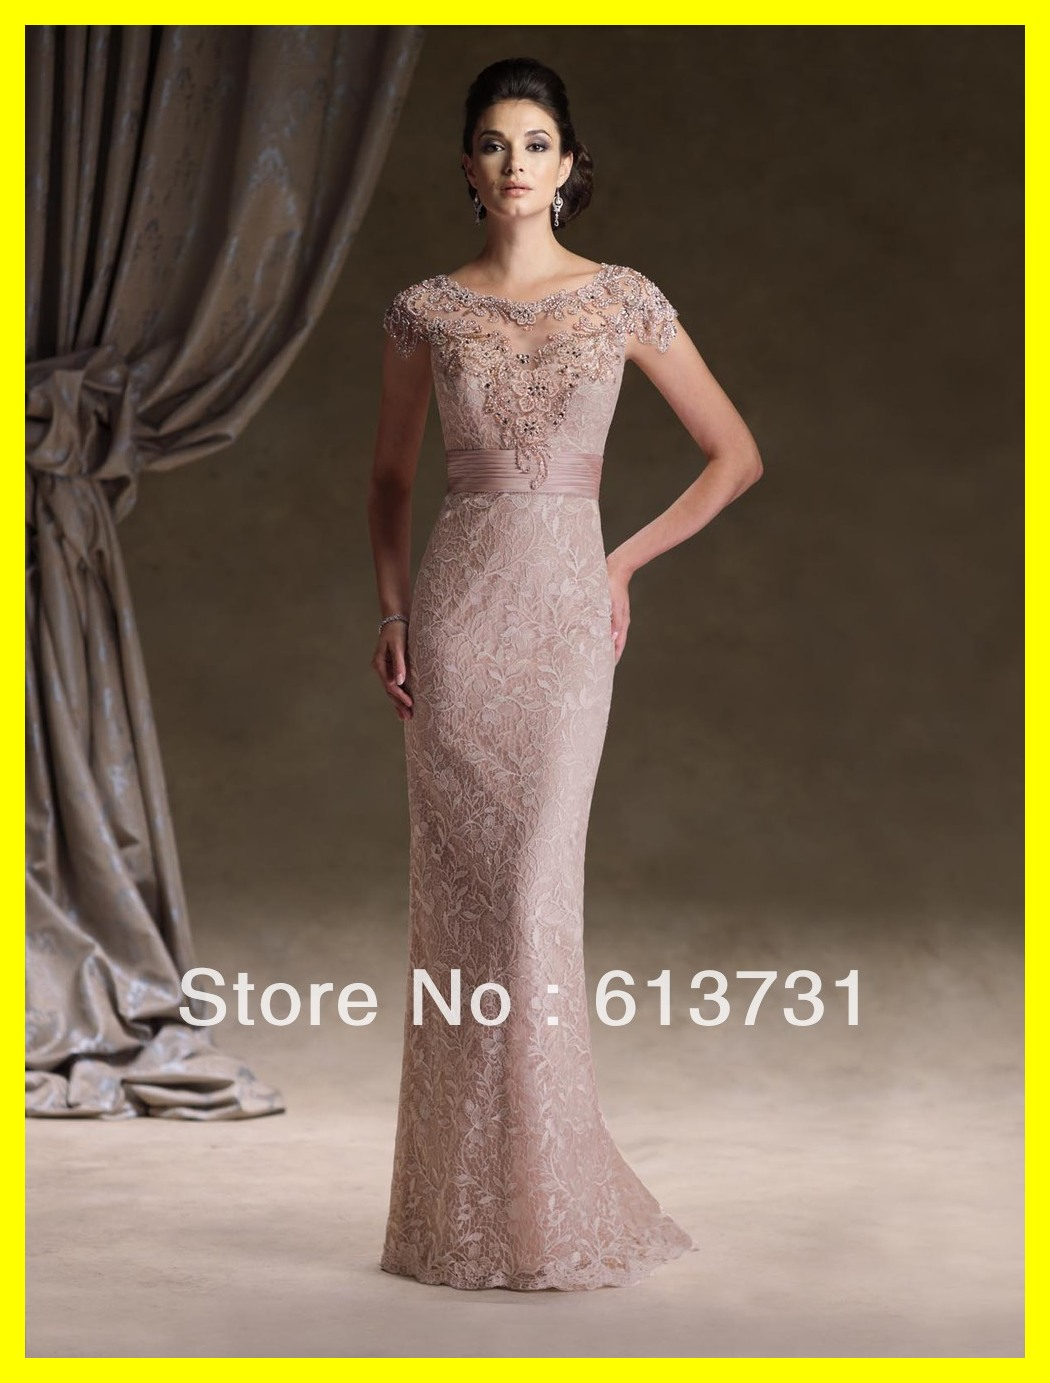 Mother of the bride dress designers dresses beach wedding for Mother of the groom dress beach wedding